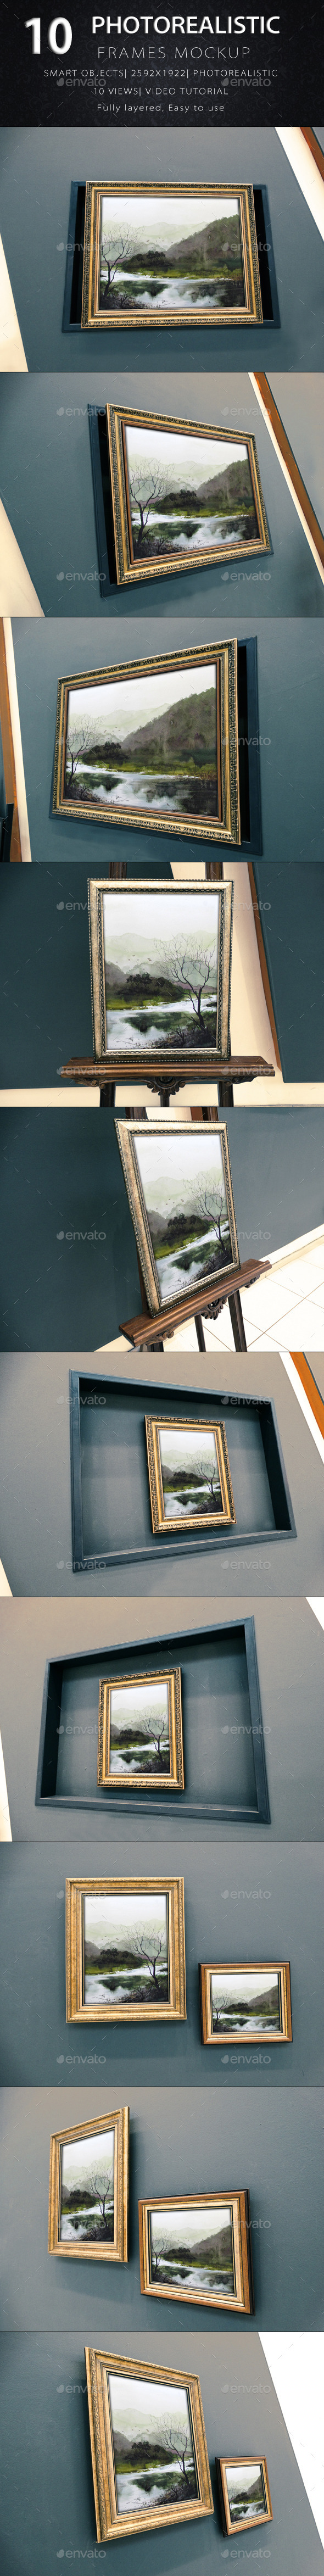 Photorealistic Frame Mock Up Vol.3 - Product Mock-Ups Graphics